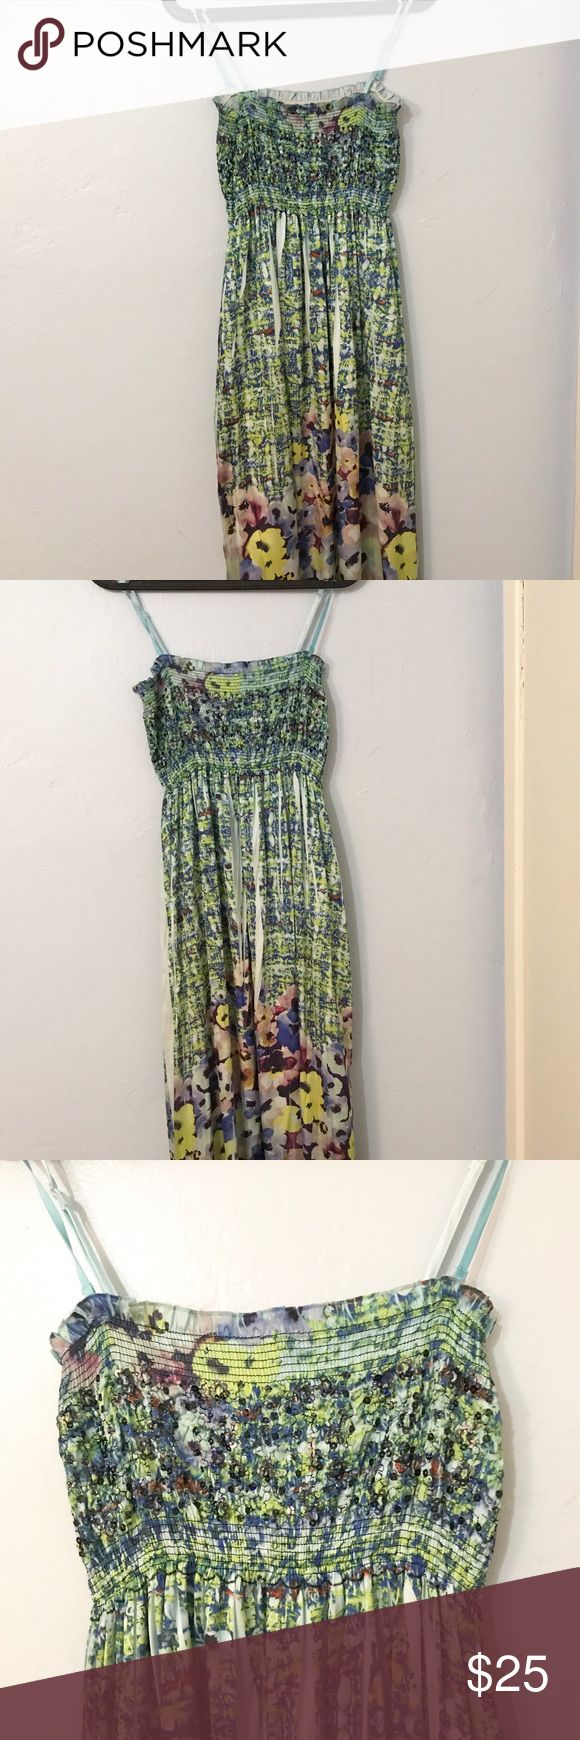 Lapis anthropologie maxi dress floral green/blue Gorgeous green floral Easter print lapis maxi dress great for upcoming spring weddings or any occasion removable straps spaghetti straps or strapless one size floor length sequins. WIDE STRETCHY ELASTIC UPP